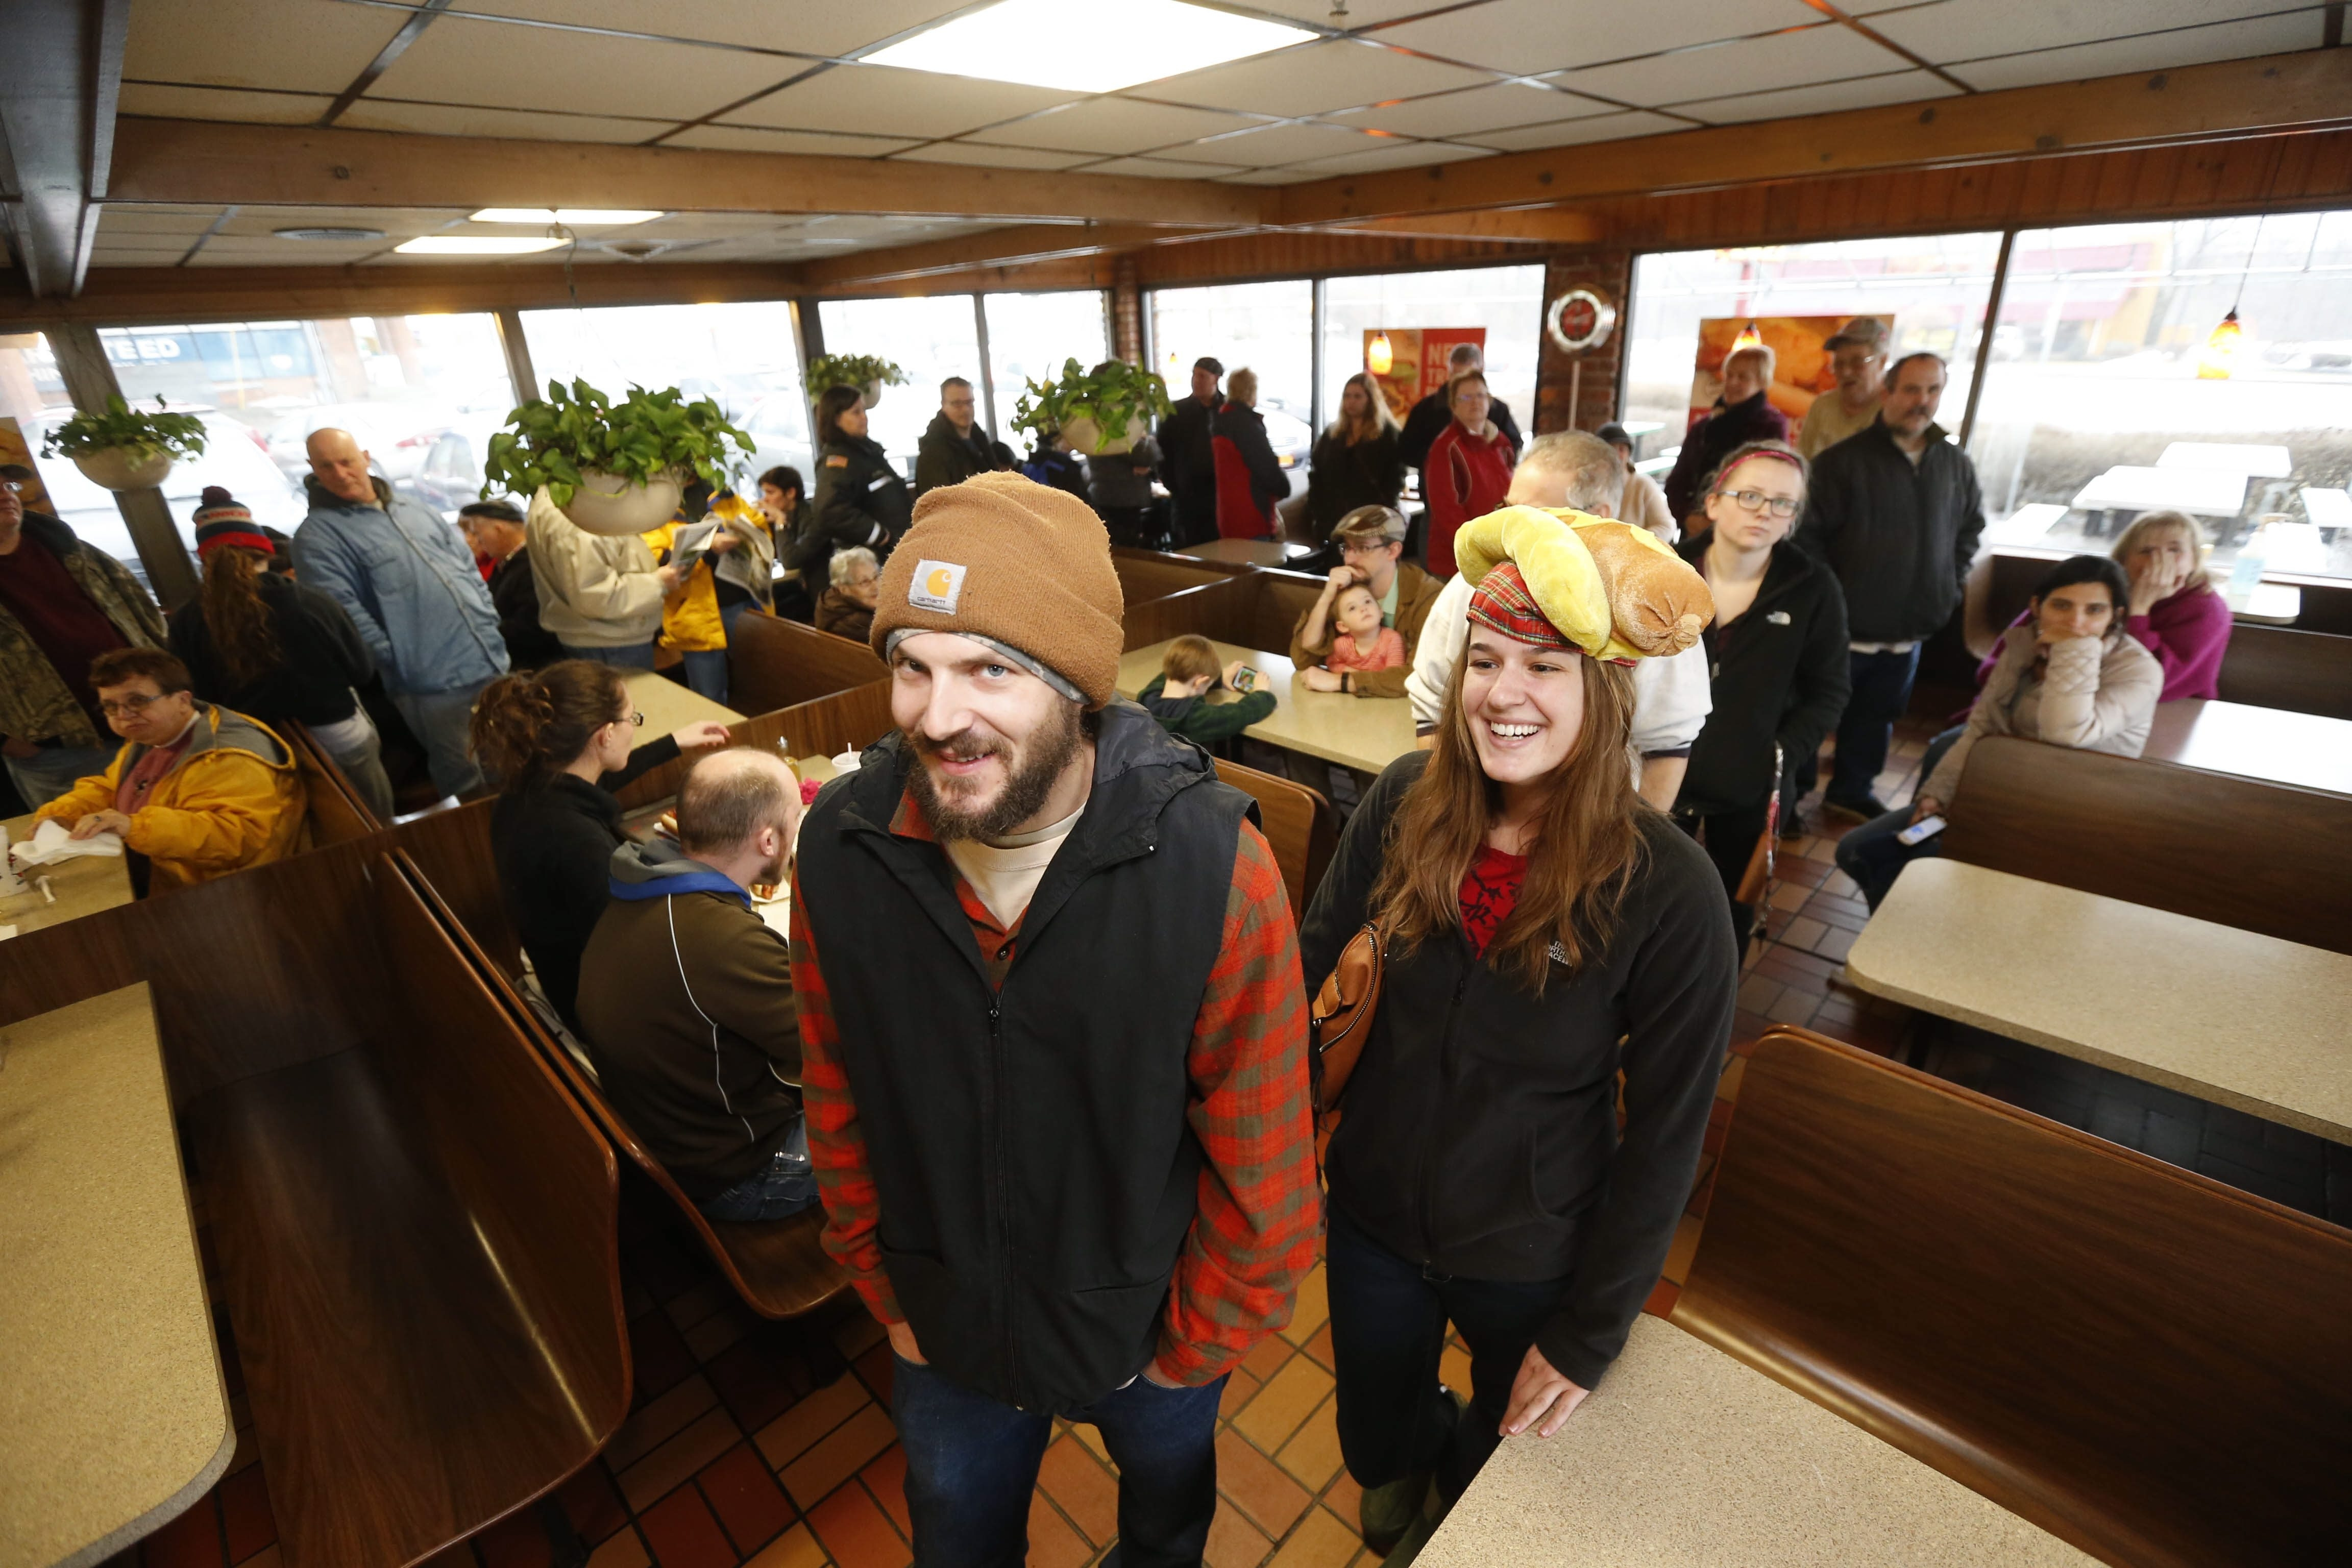 Hot dog fans Michael Murray, of West Falls, and his girlfriend Rebecca Schafer, of Colden, wearing her prized hot dog hat, stood in line for close to two hours to get some franks during the Ted's Hot Dogs customer appreciation $1 hot dog deal today at their Orchard Park location onThursday, Feb. 25, 2016.  (Robert Kirkham/Buffalo News)